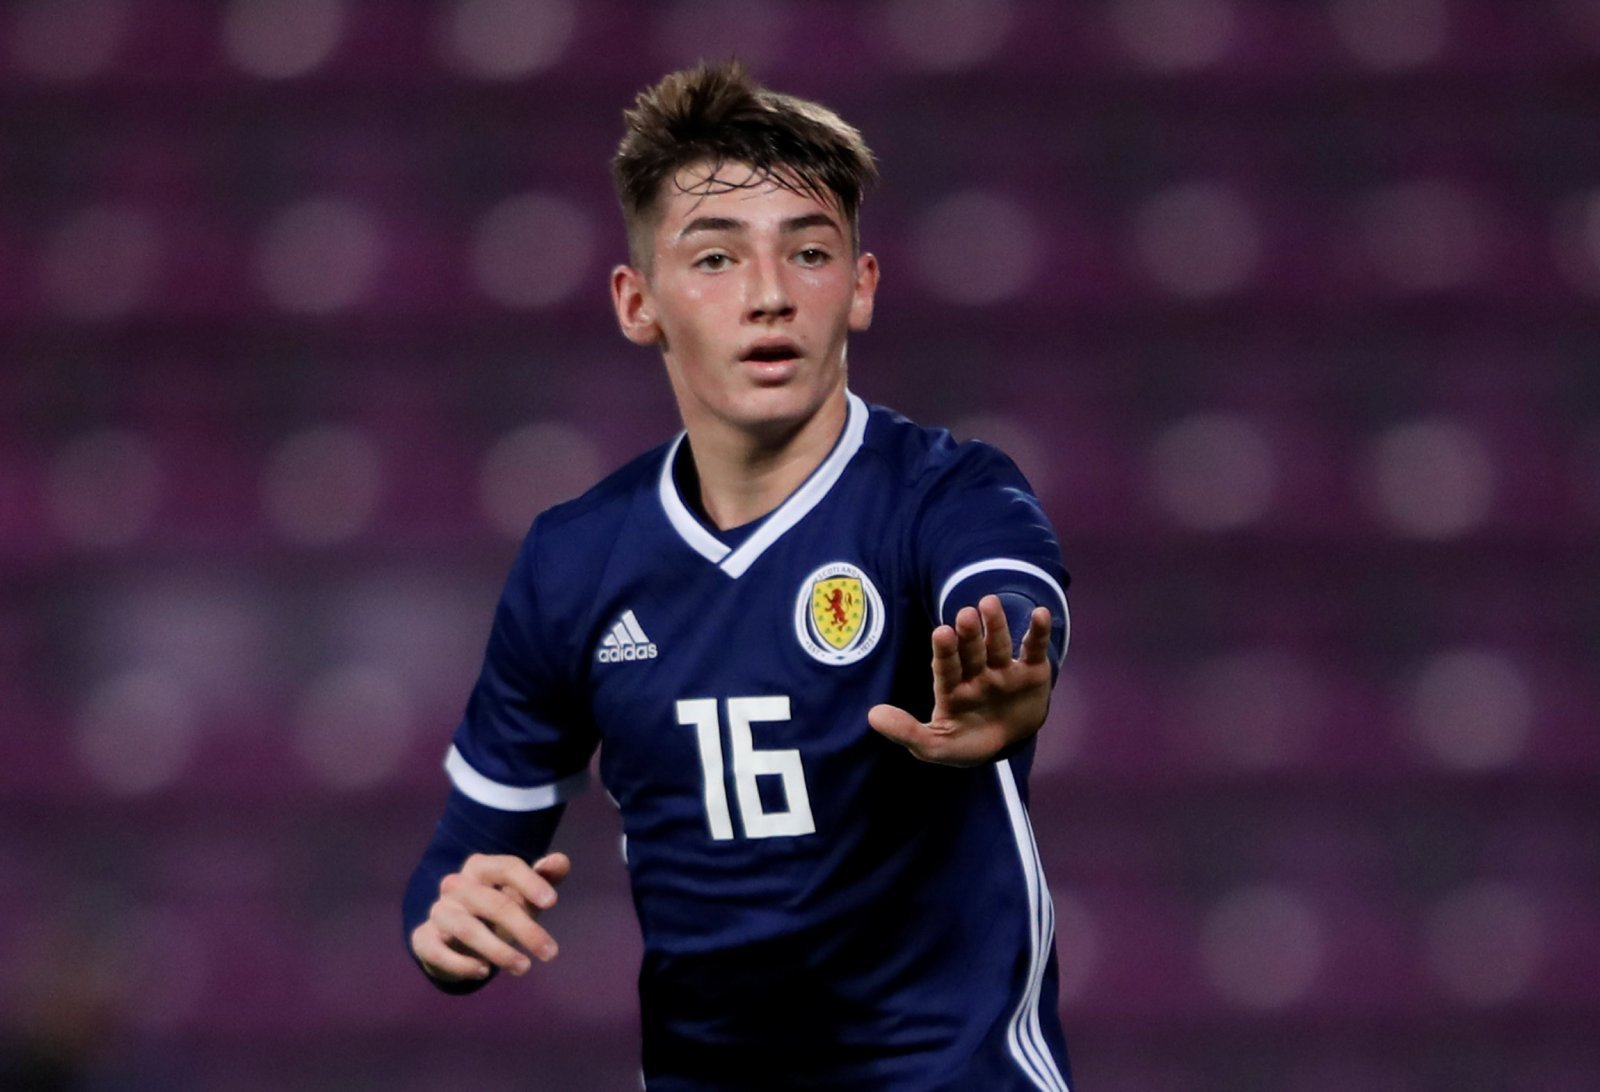 Billy Gilmour could be the man to breakthrough into Chelsea's first team